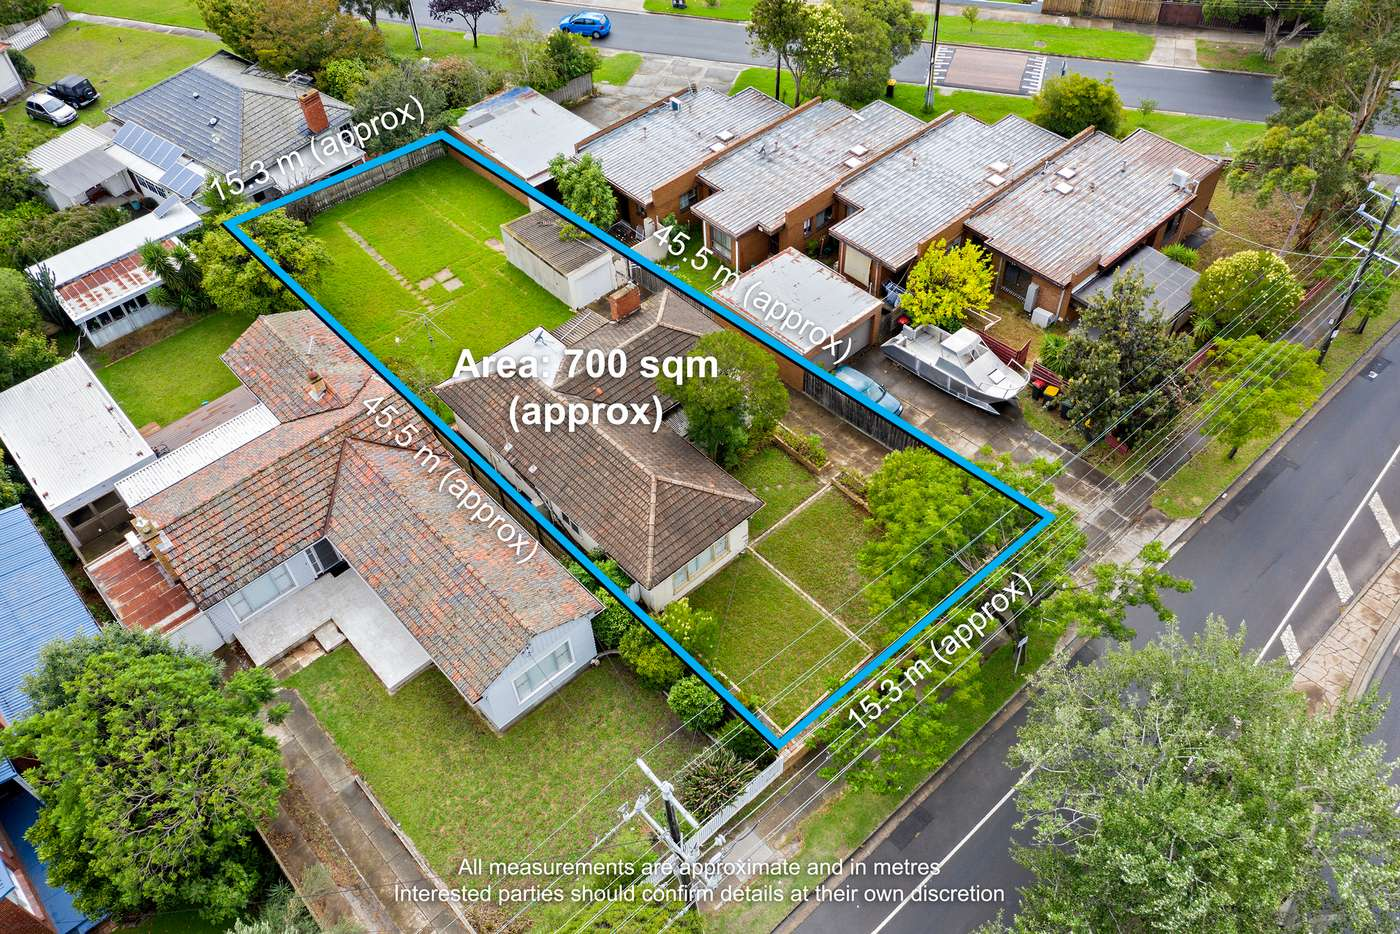 Main view of Homely house listing, 1789 Dandenong Road, Oakleigh East VIC 3166